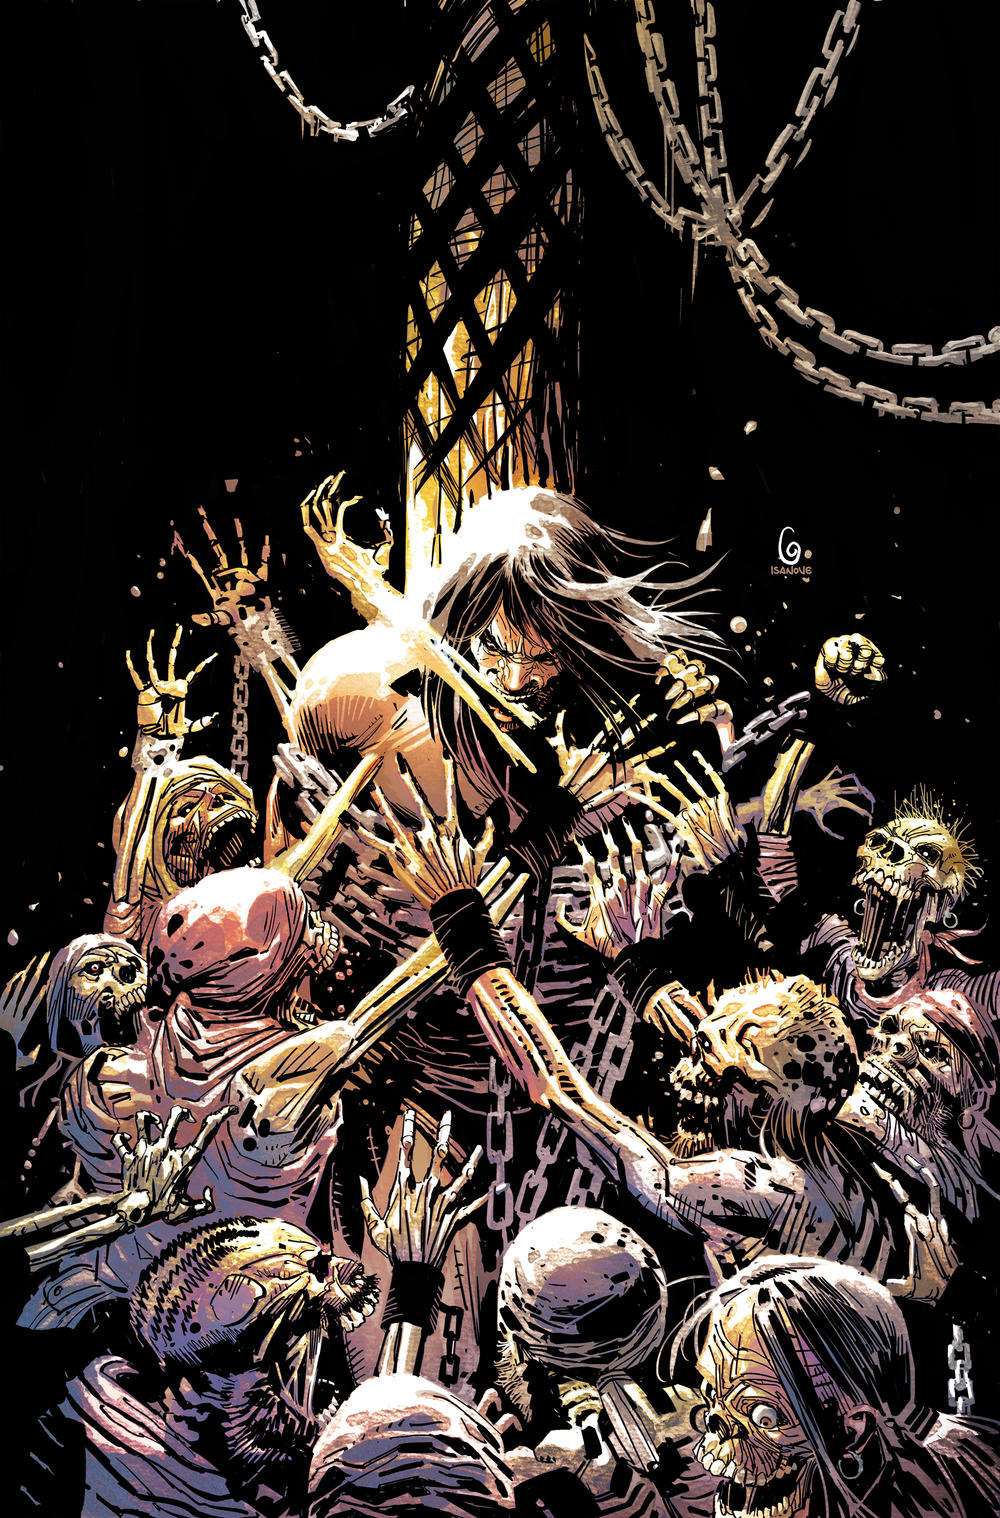 Savage Sword of Conan variant cover by Ron Garney